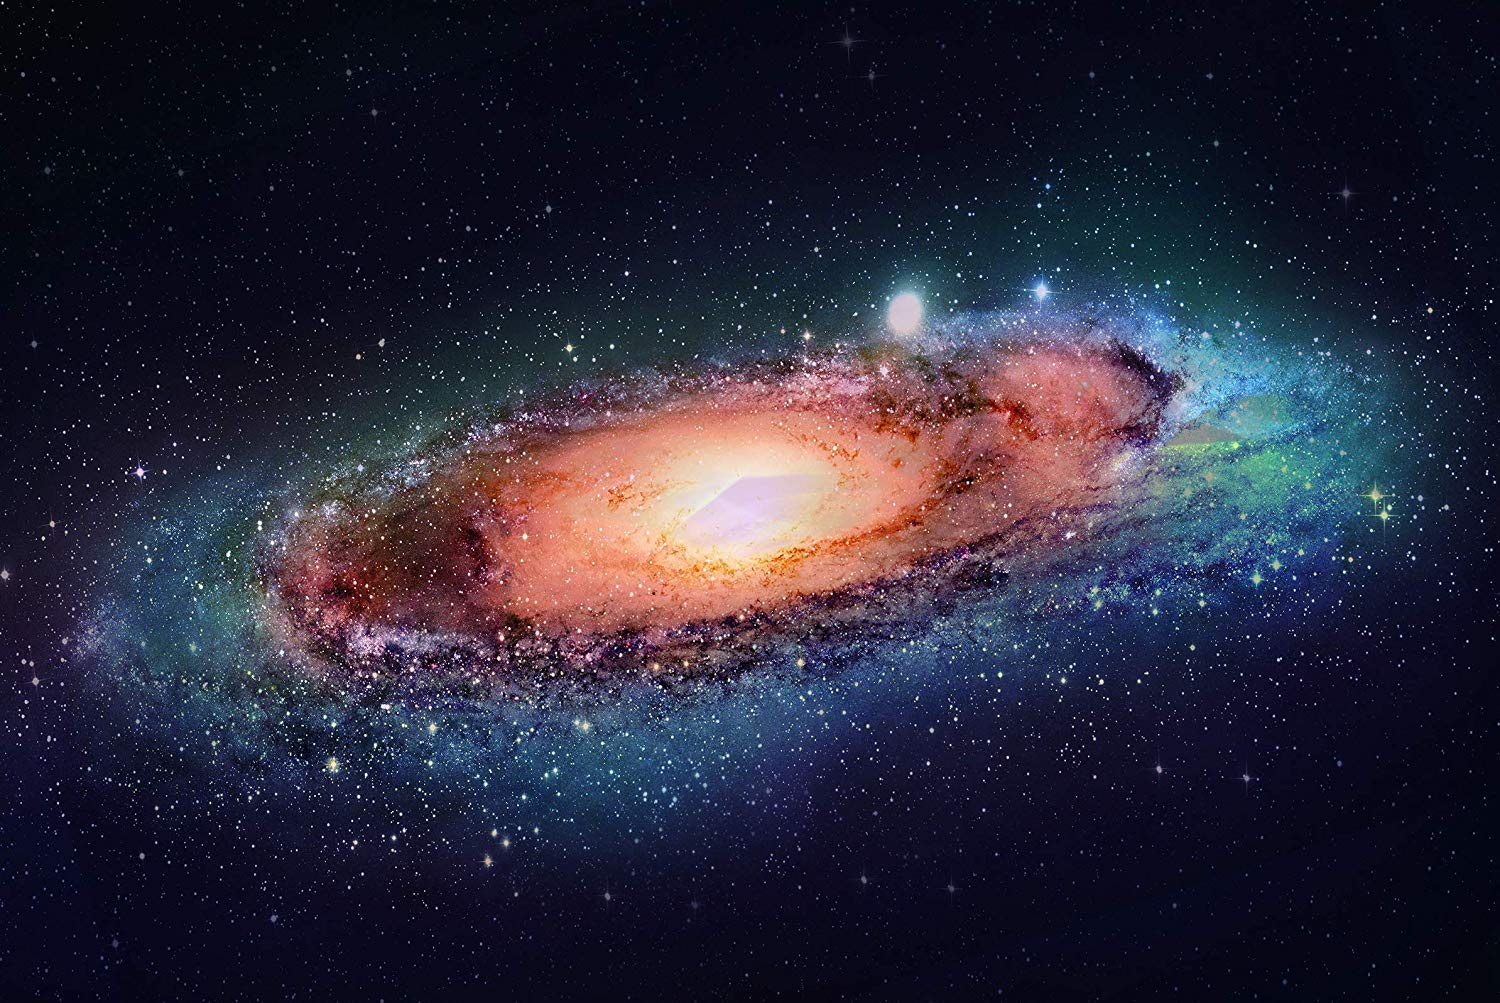 Stunning Andromeda Spiral Galaxy, constellation, the nearest major galaxy to the Milky Way. Laminated Poster